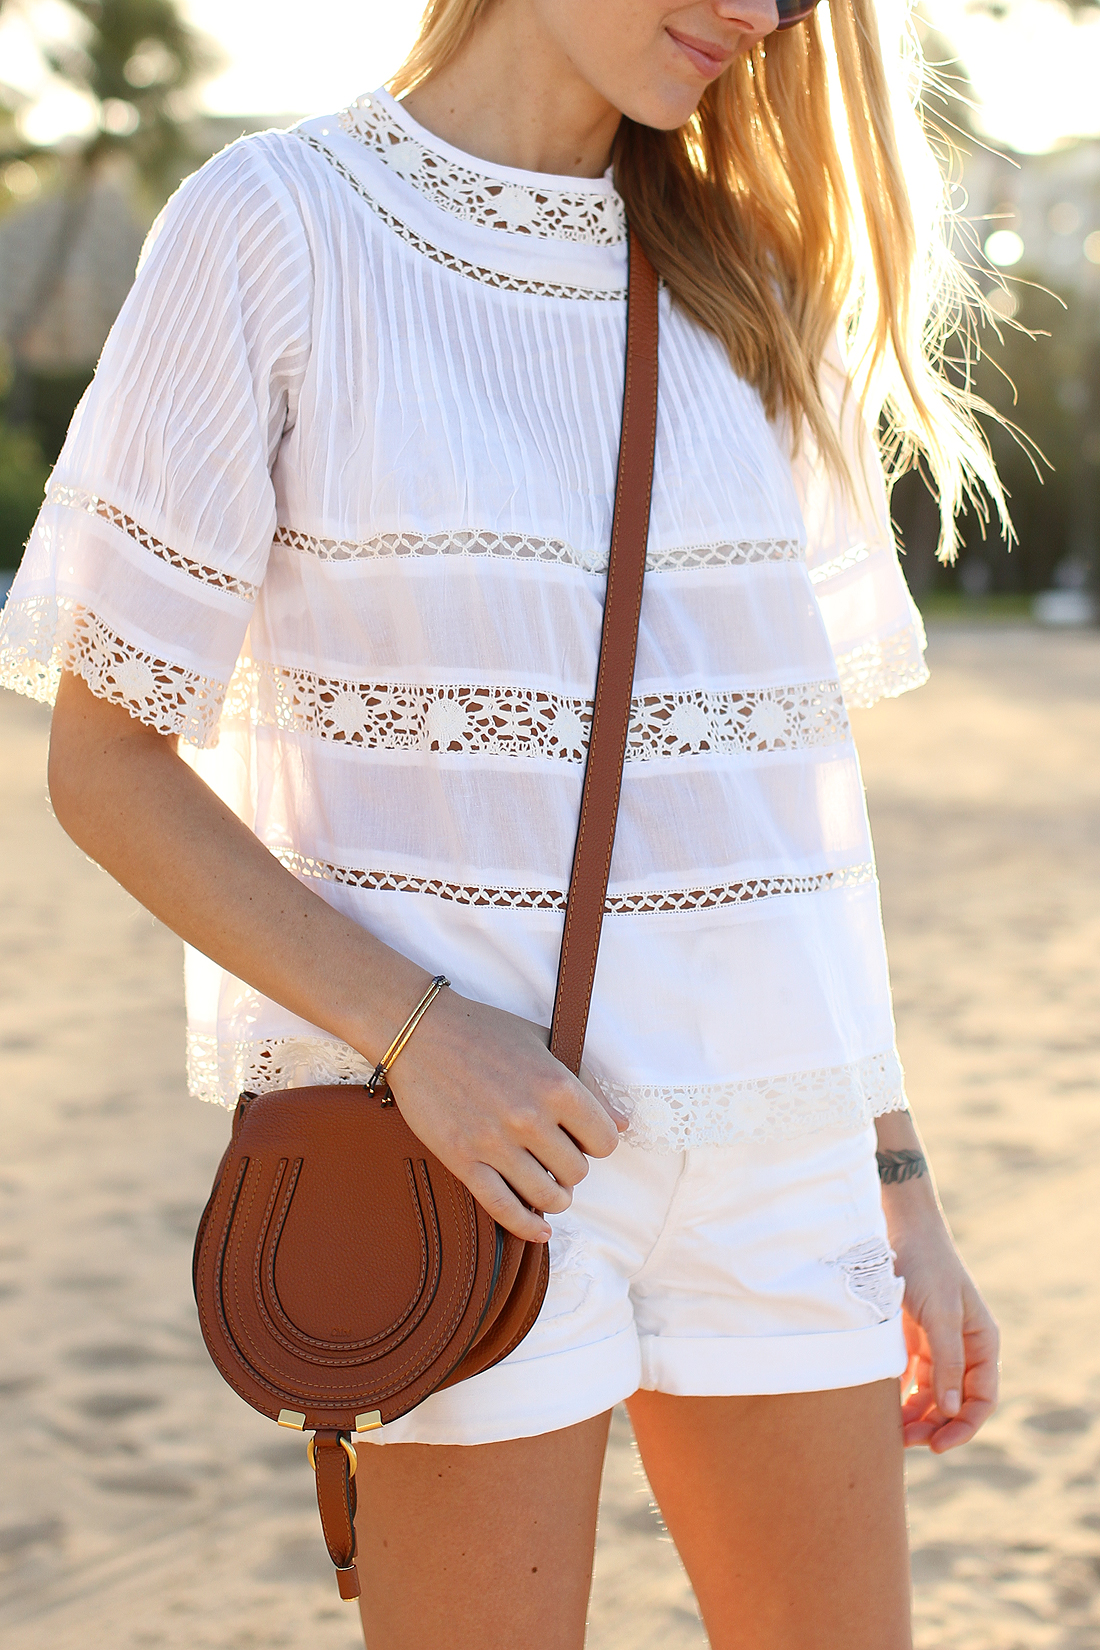 fashion-jackson-love-sam-white-lace-top-white-denim-shorts-chloe-marcie-small-crossbody